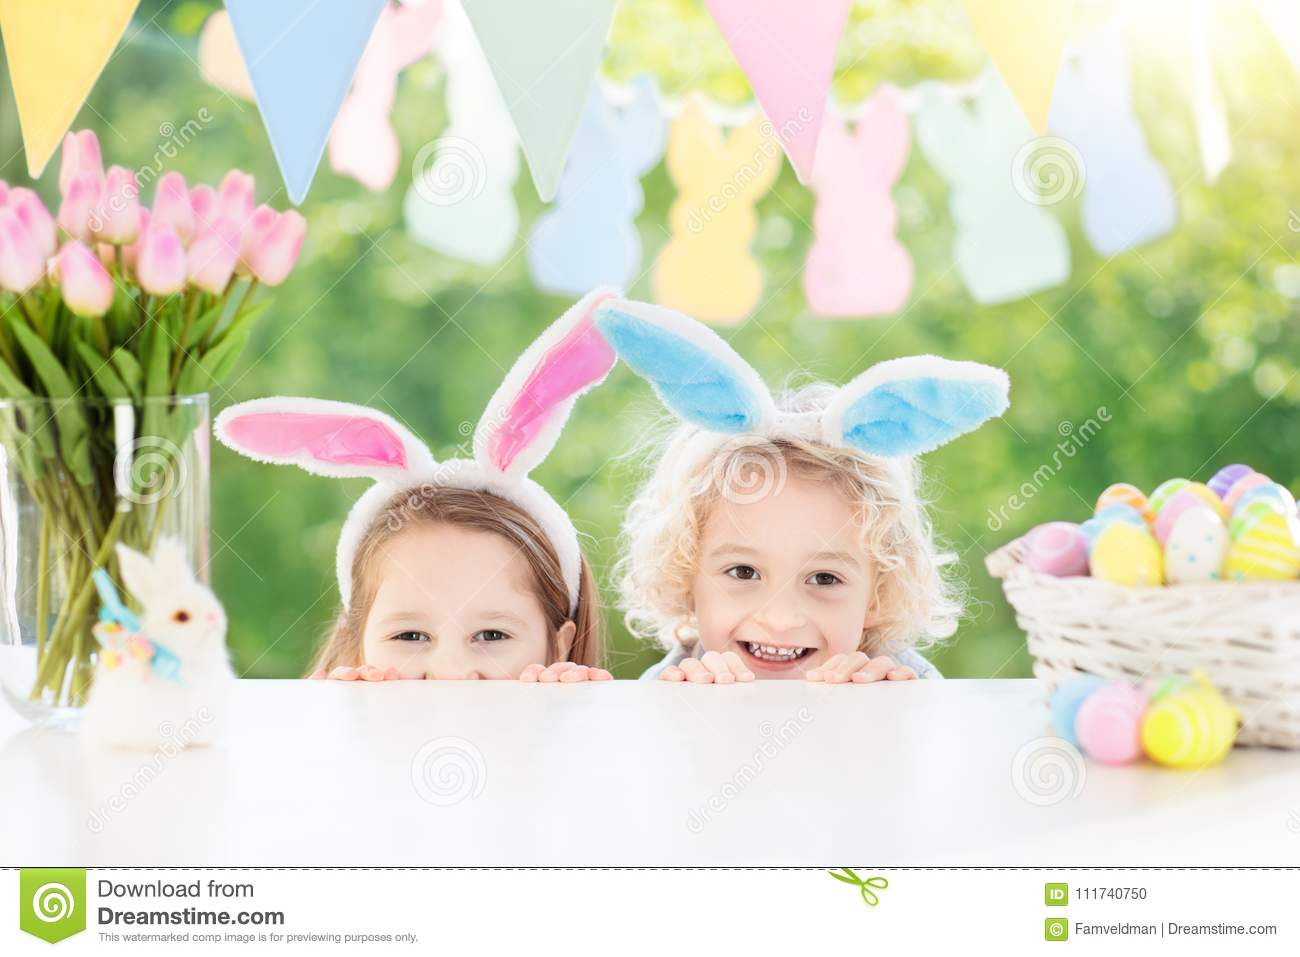 Kids with bunny ears and eggs on Easter egg hunt.